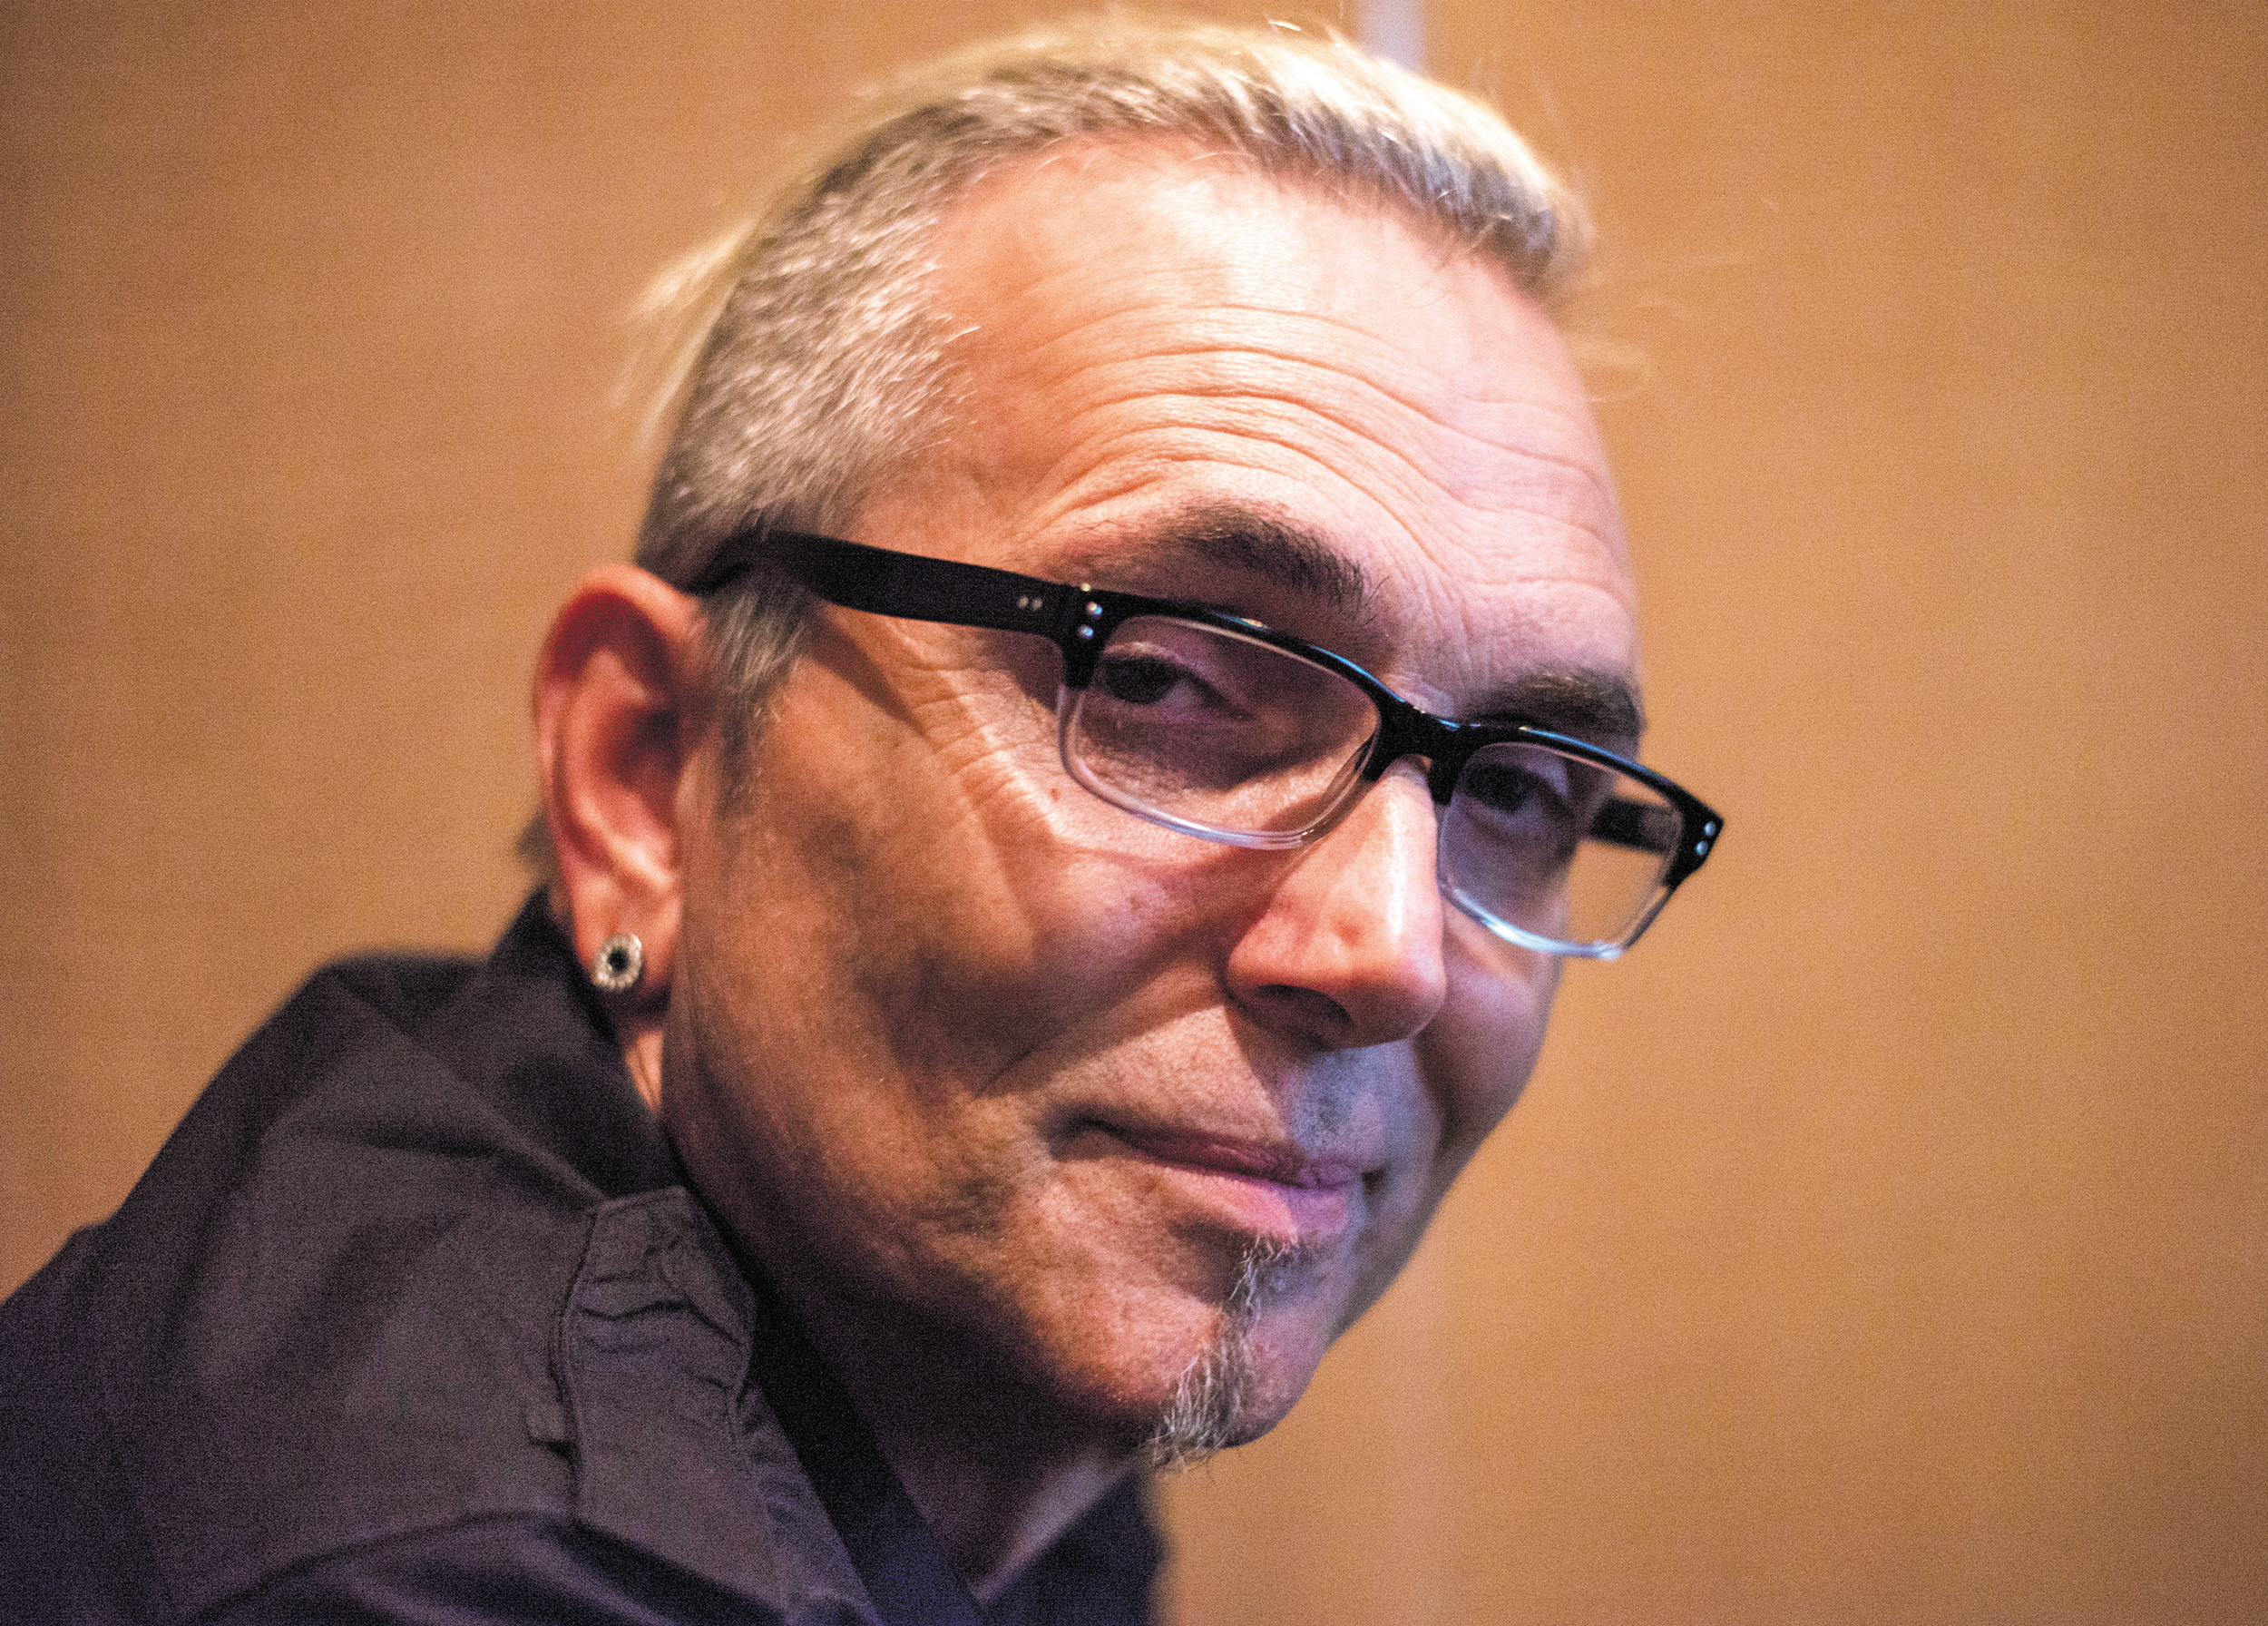 Art Alexakis while on the Summerland Tour in Denver, Colorado. Photo by Caitlin Savage